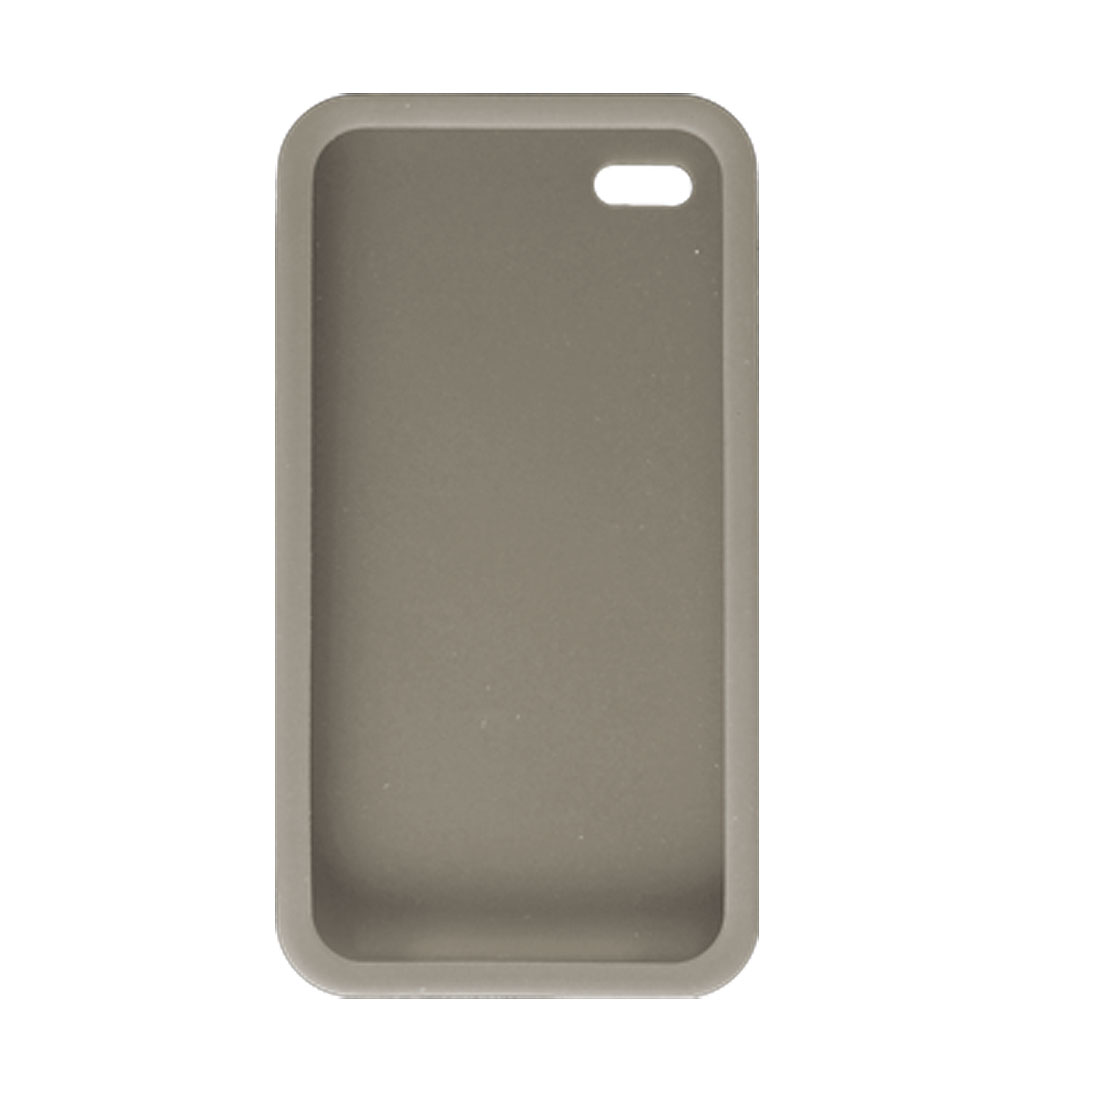 Gray Soft Silicone Skin Case Cover for Apple iPhone 4 4G